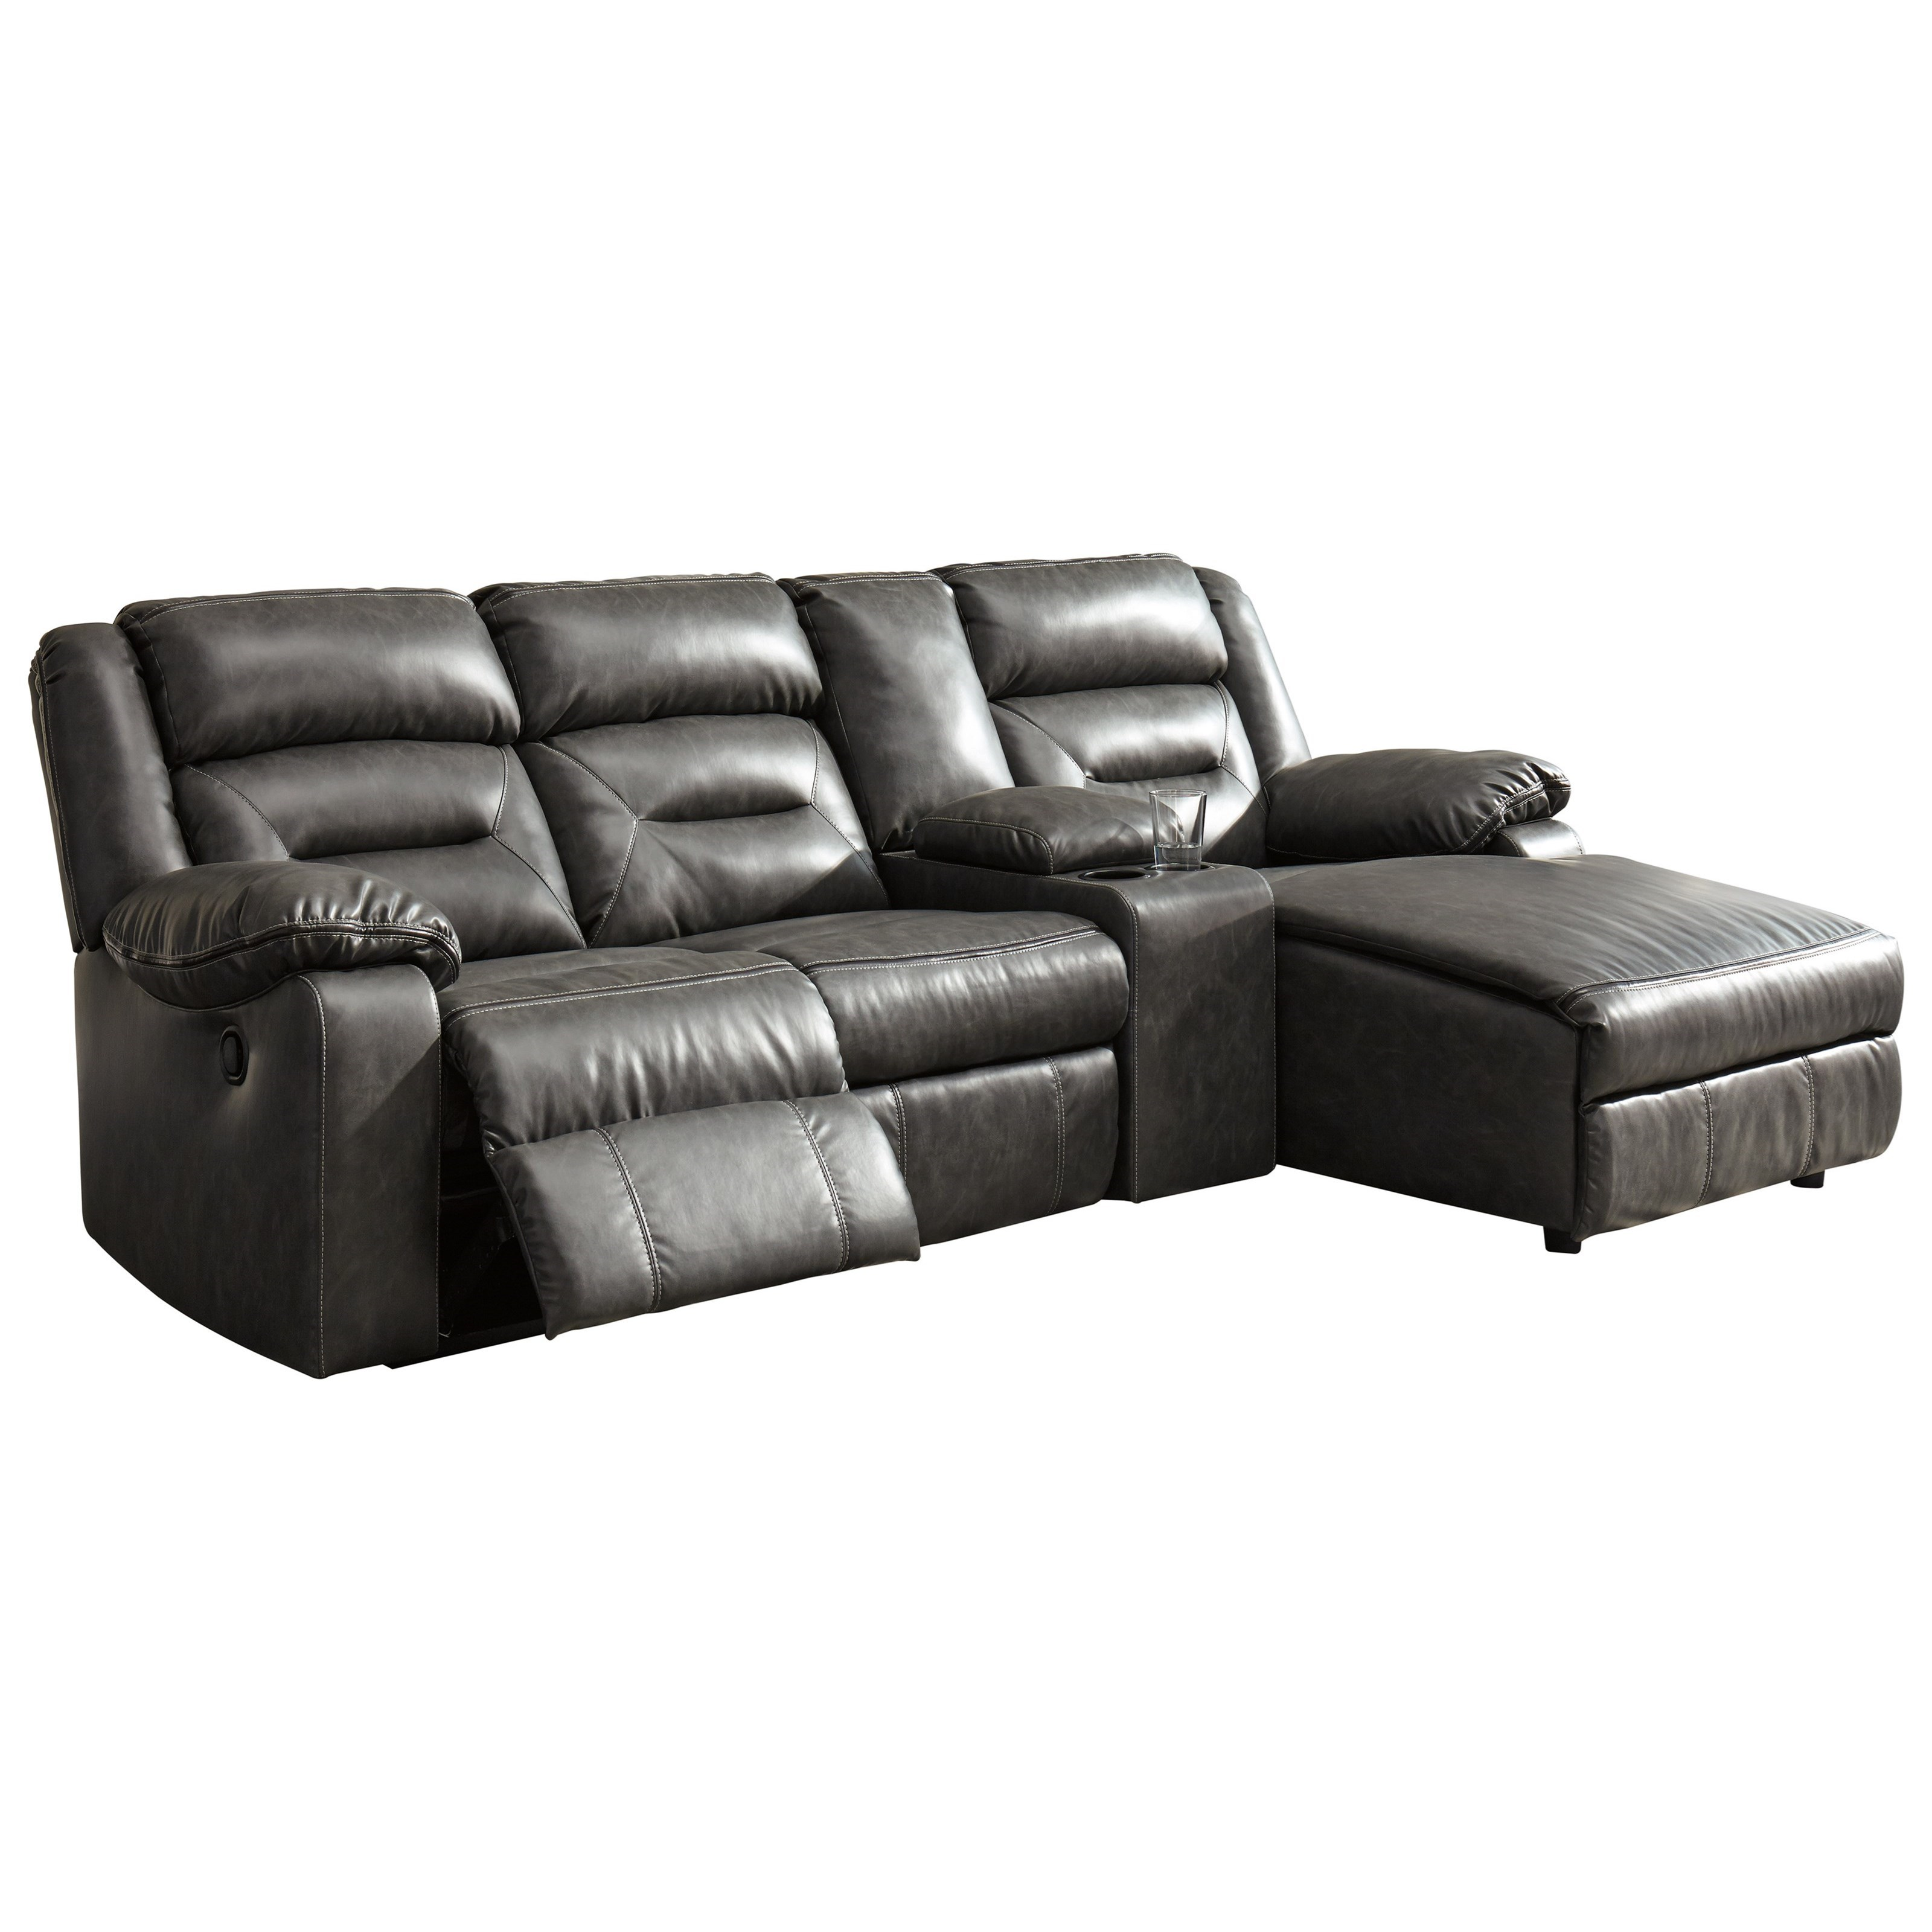 Signature Design By Ashley Coahoma 4-Piece Sectional With